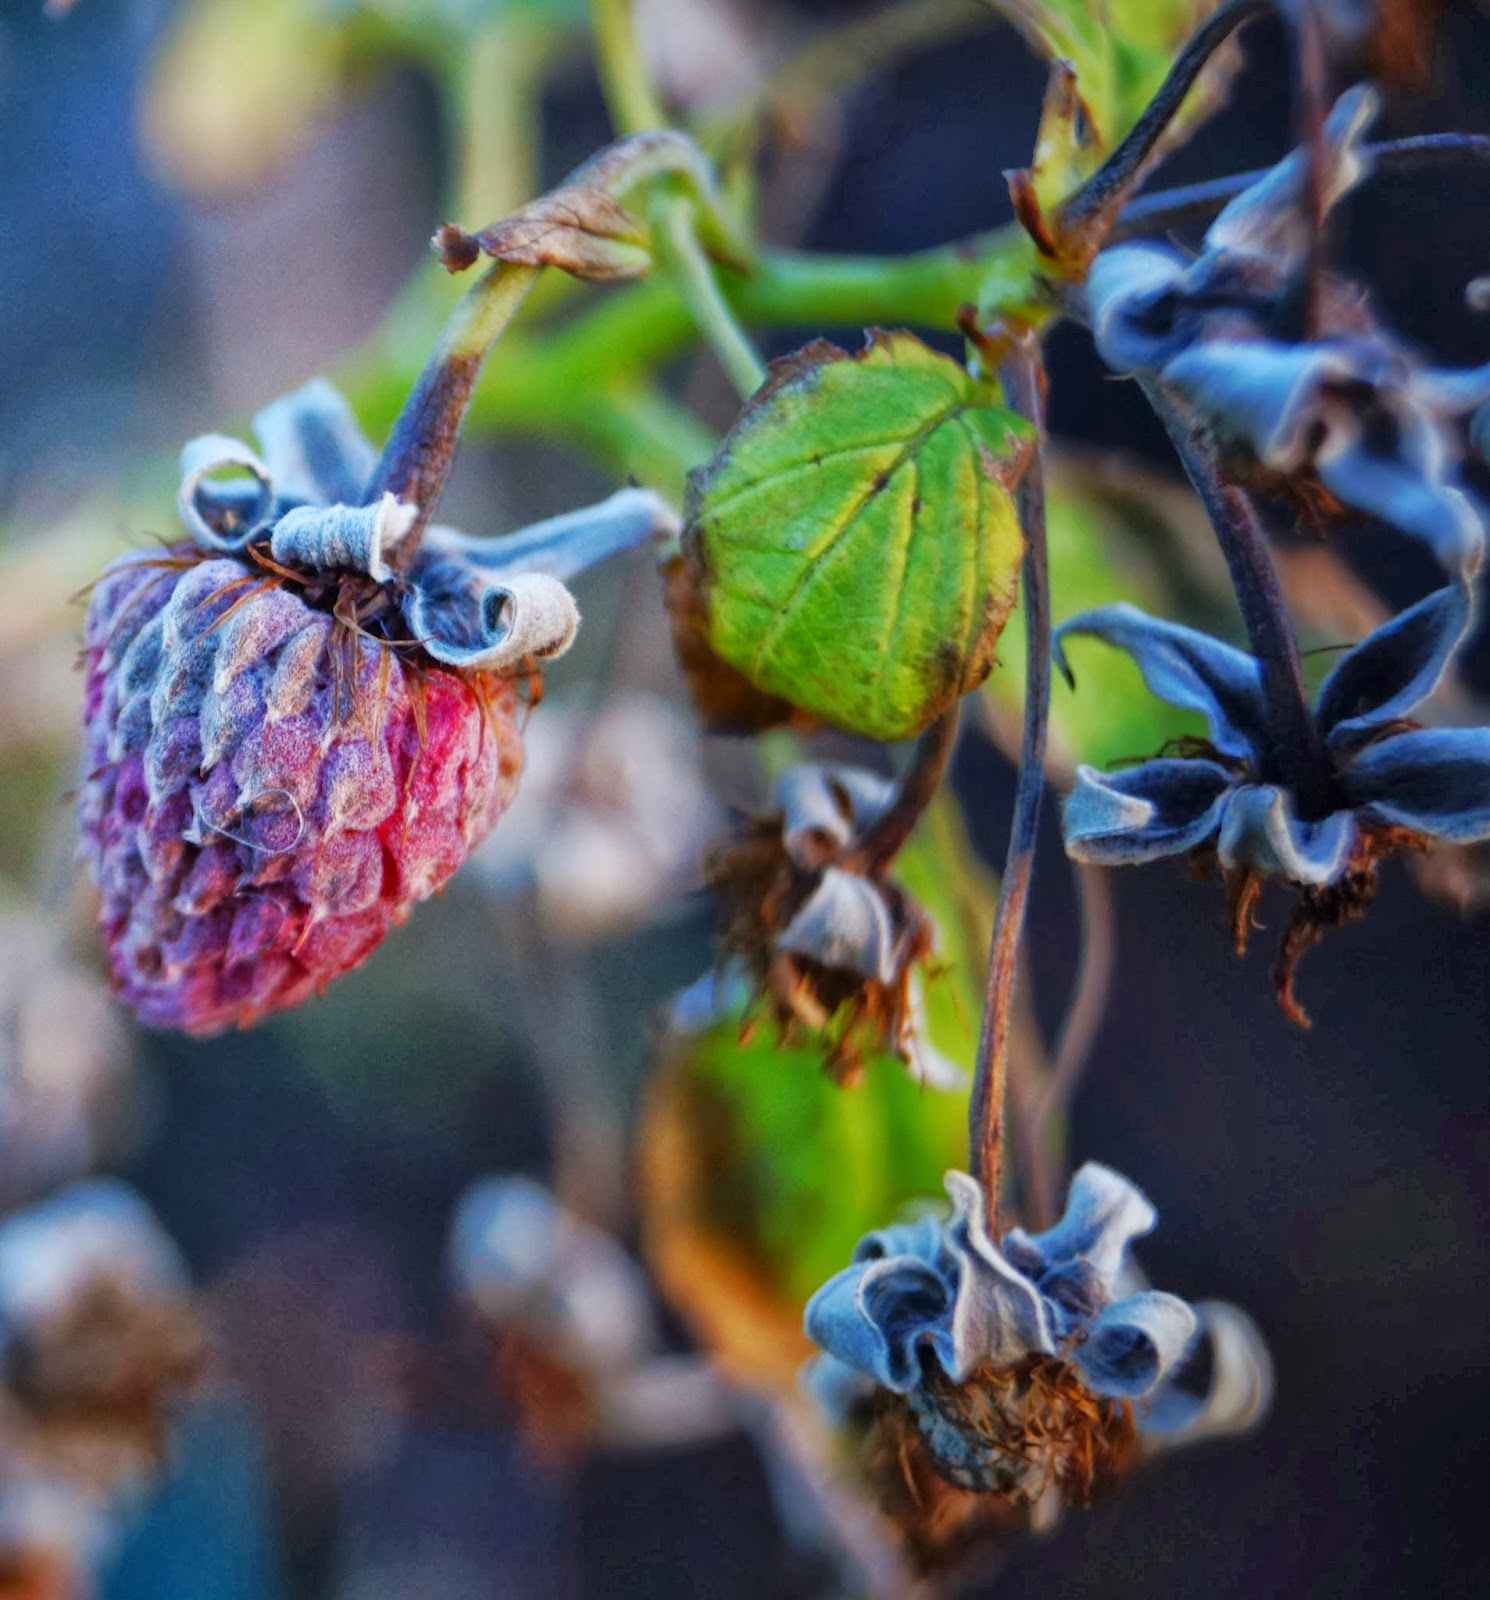 Freeze dried raspberries on the plant - 'Grow Our Own' Allotment Blog